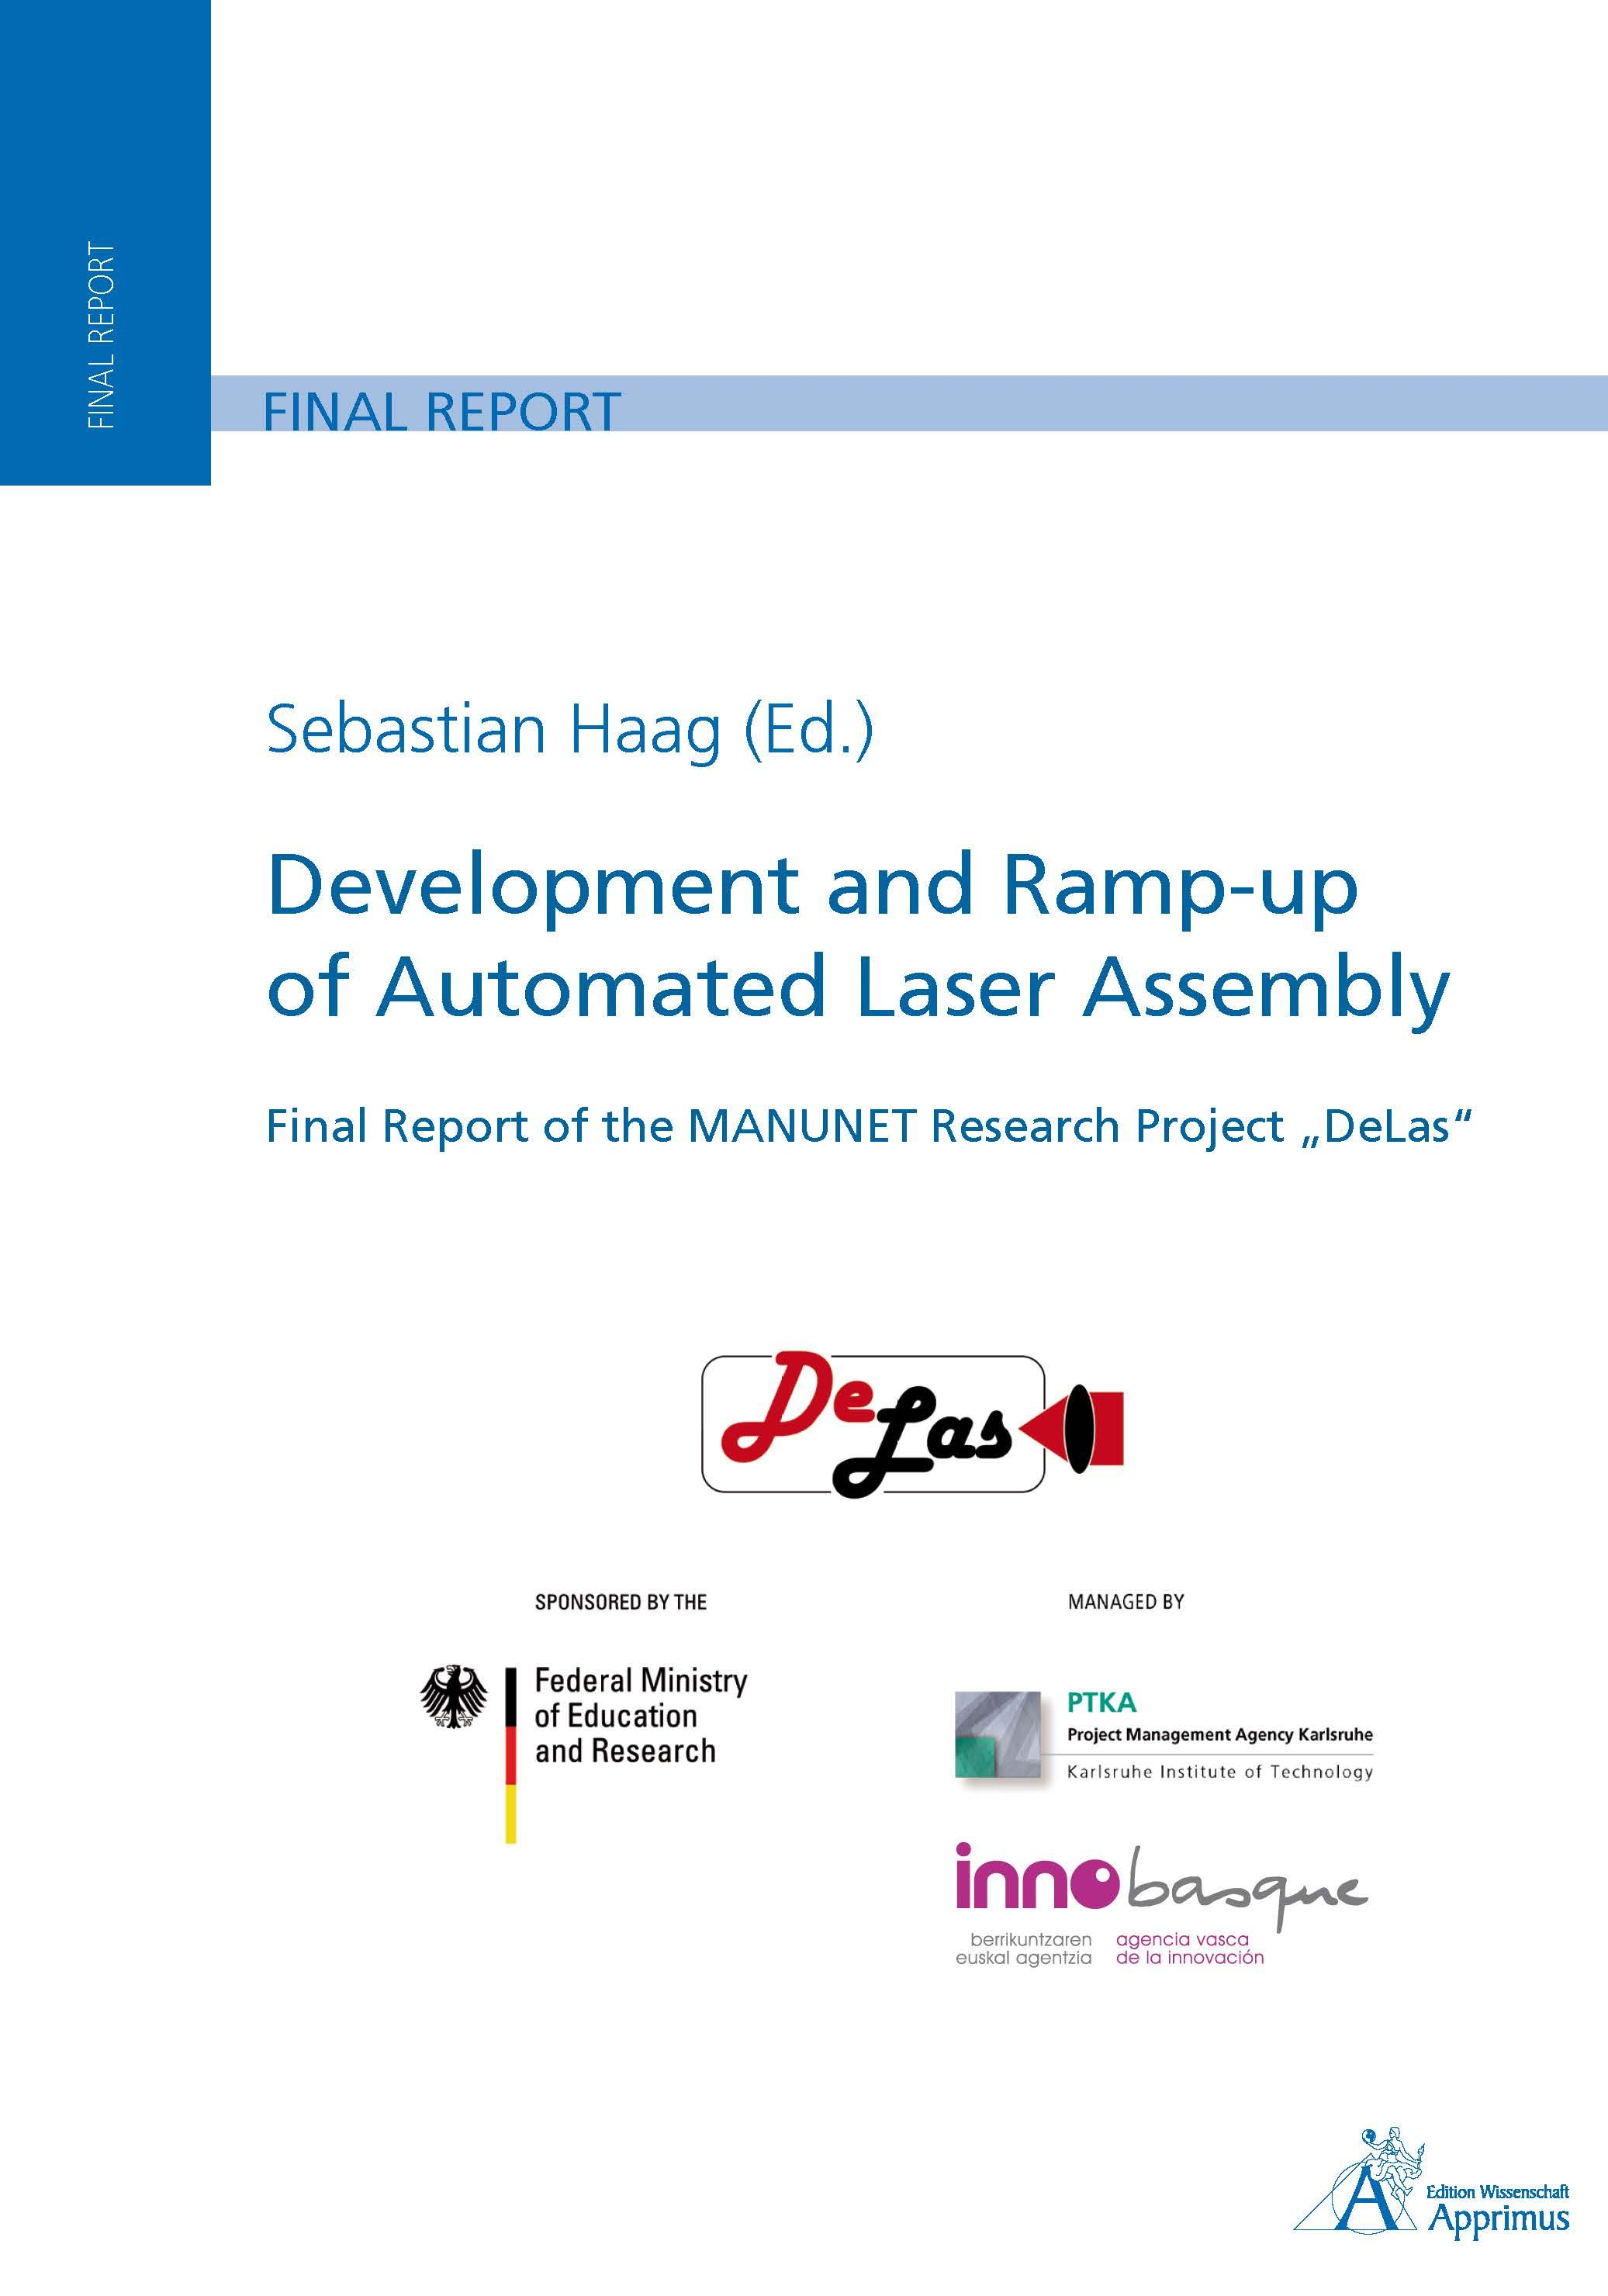 """Development and Ramp-up of Automated Laser Assembly Final Report of the MANUNET Research Project """"DeLas"""""""